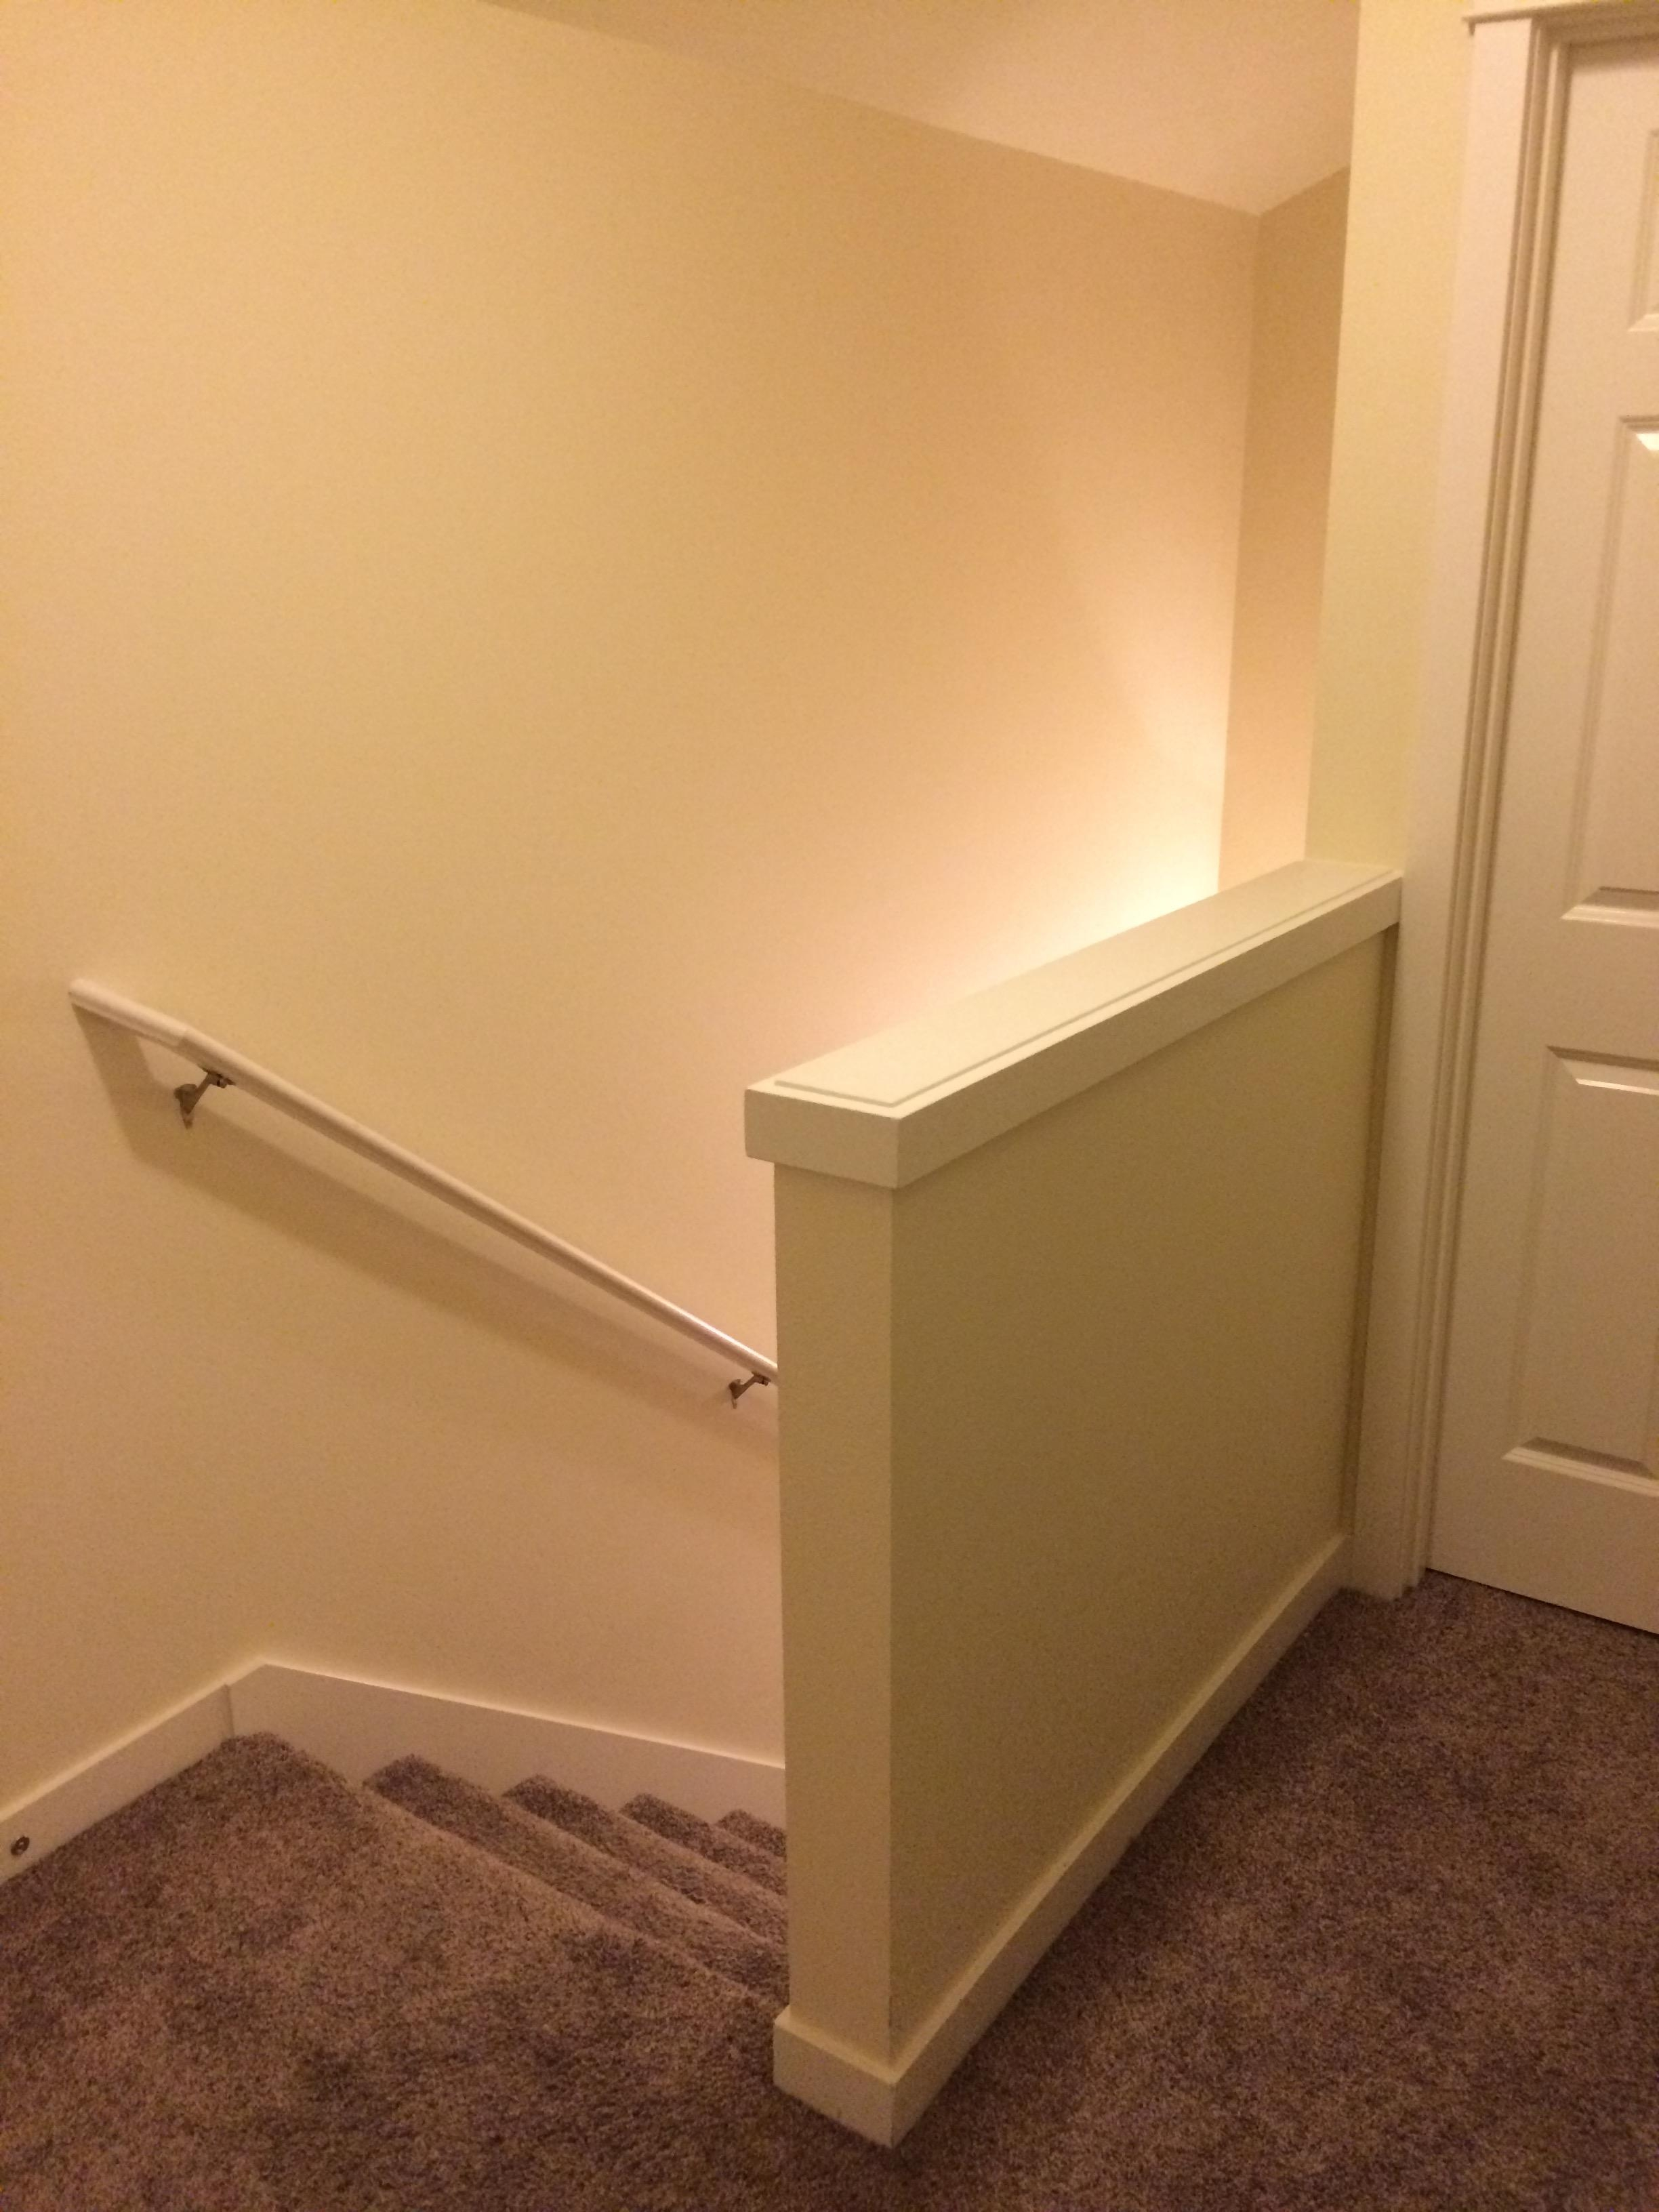 Do Nec Receptacle Spacing Rules Apply To Solid Half Wall | Wall To Floor Handrail | Glass | Paint Colors | Staircase | Wrought Iron | Concrete